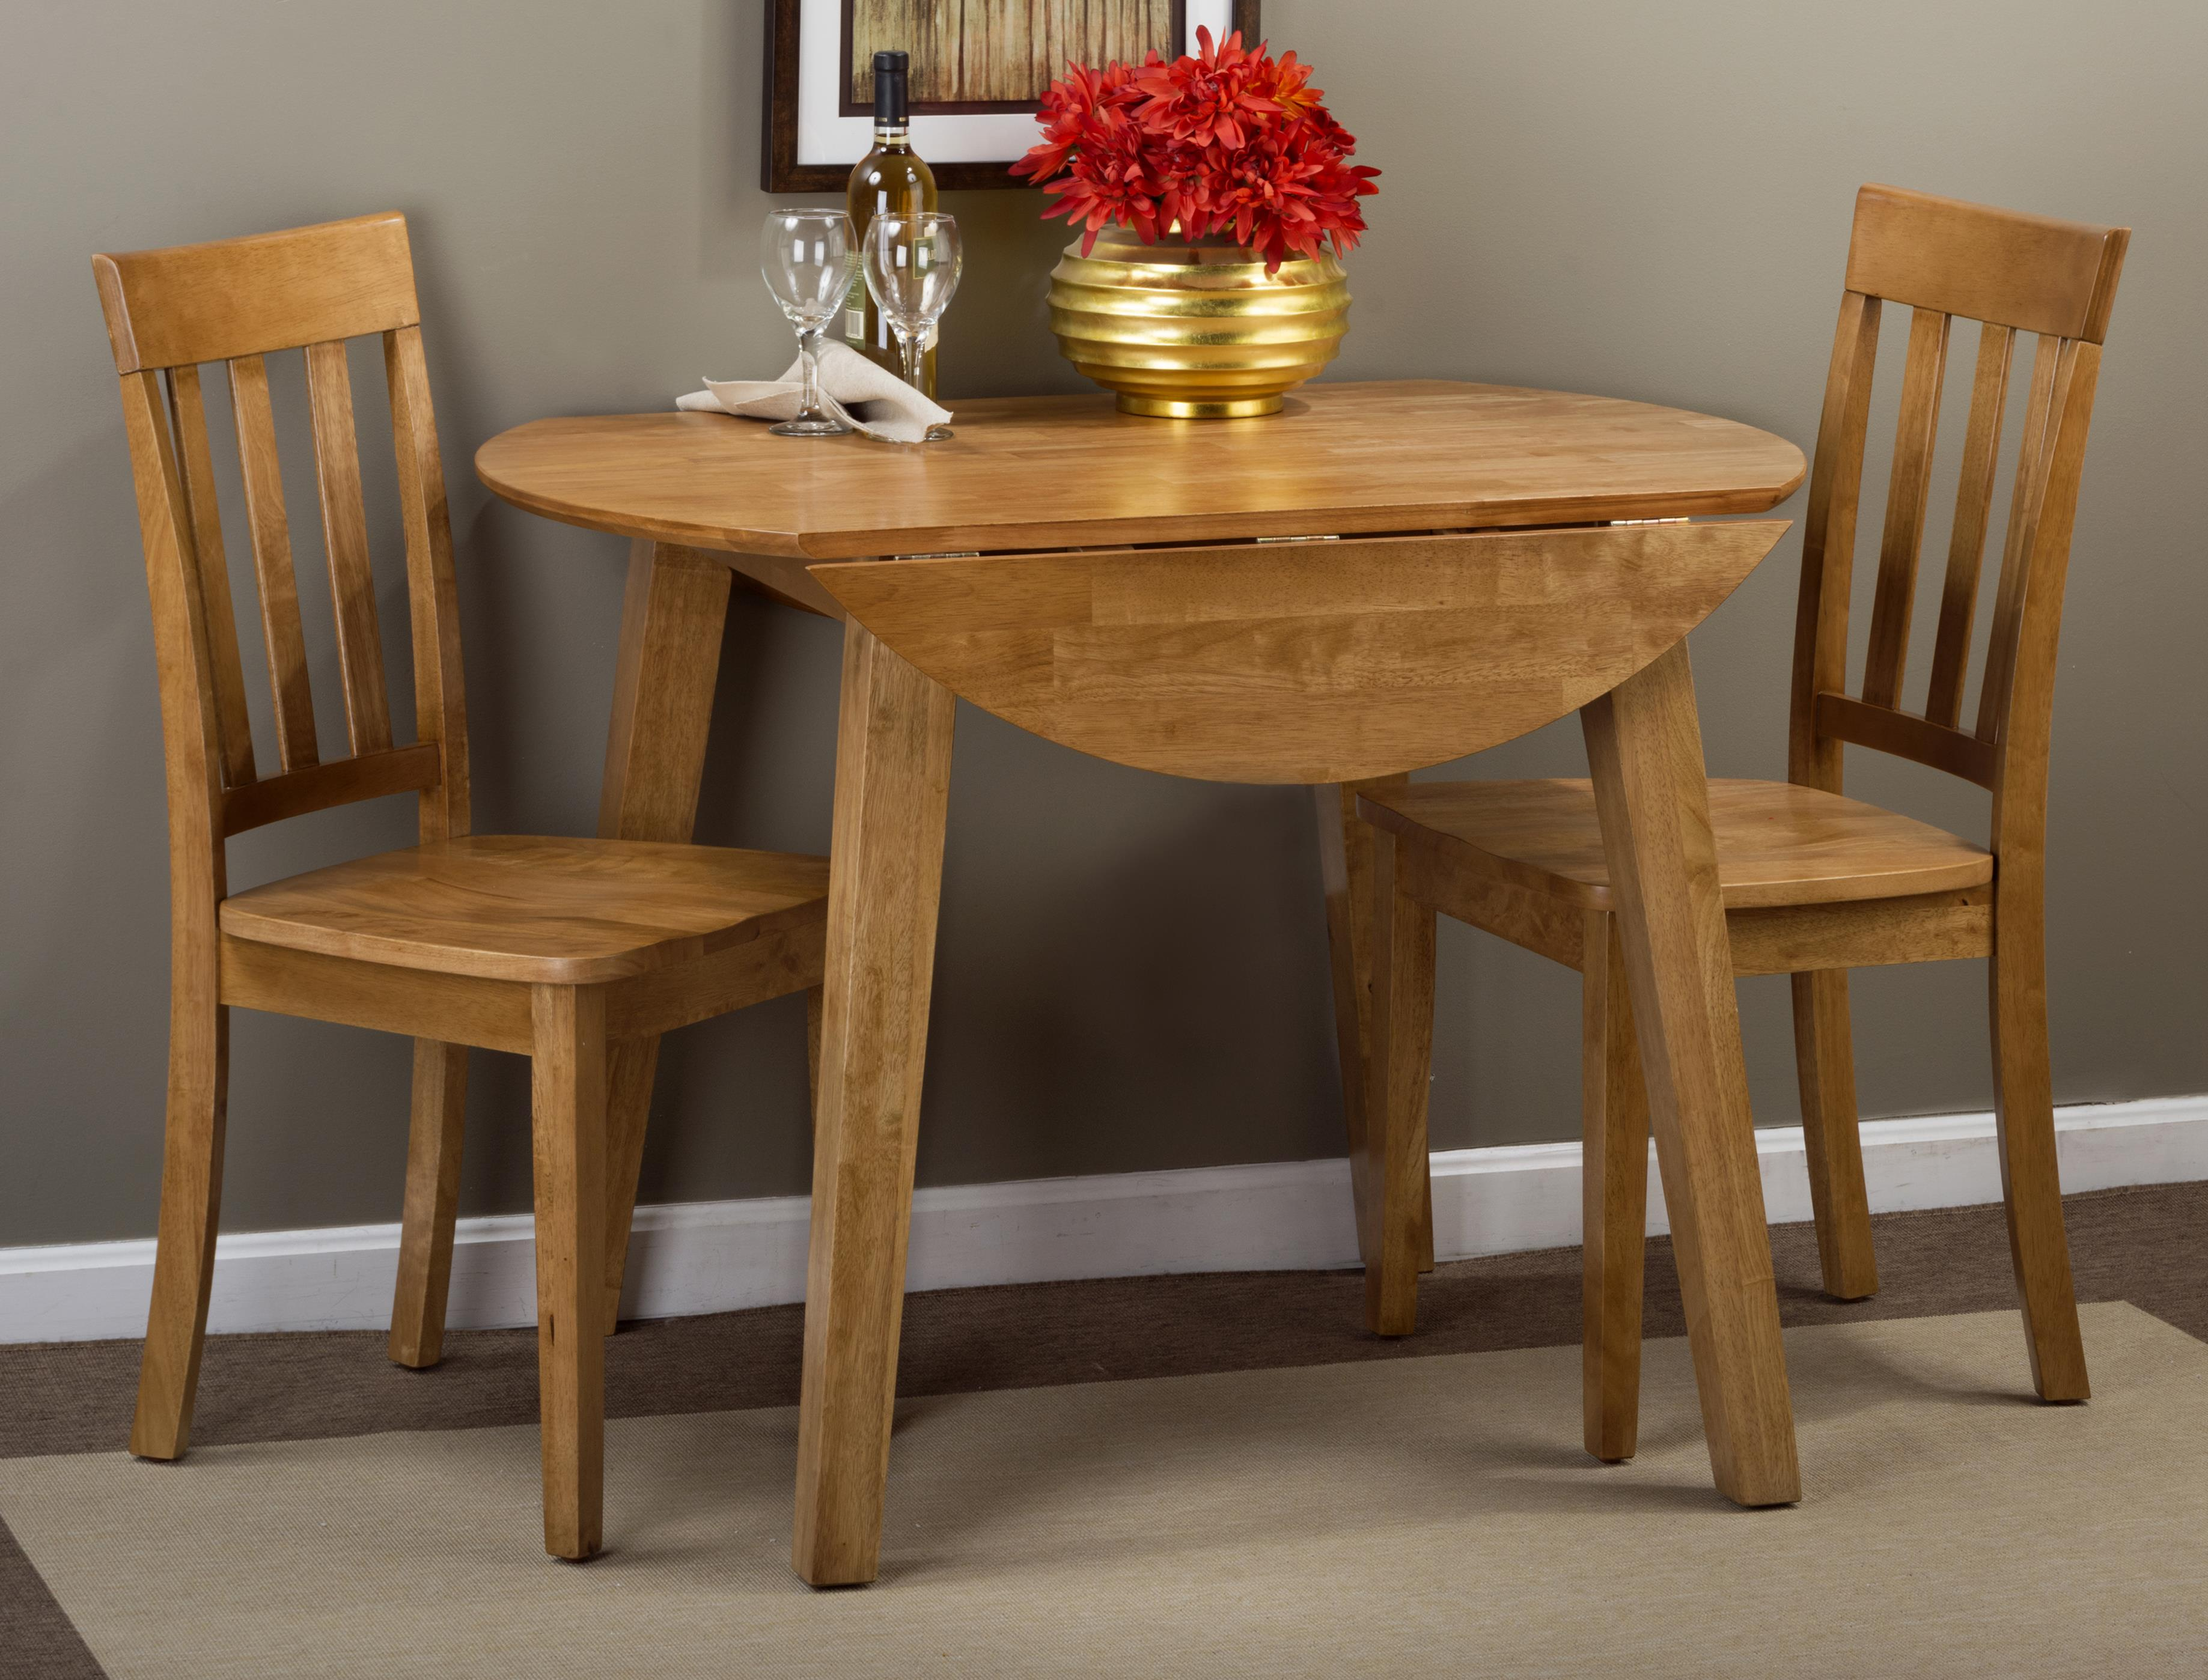 Round Table And Chair Set Jofran Simplicity Round Table And 2 Chair Set With Slat